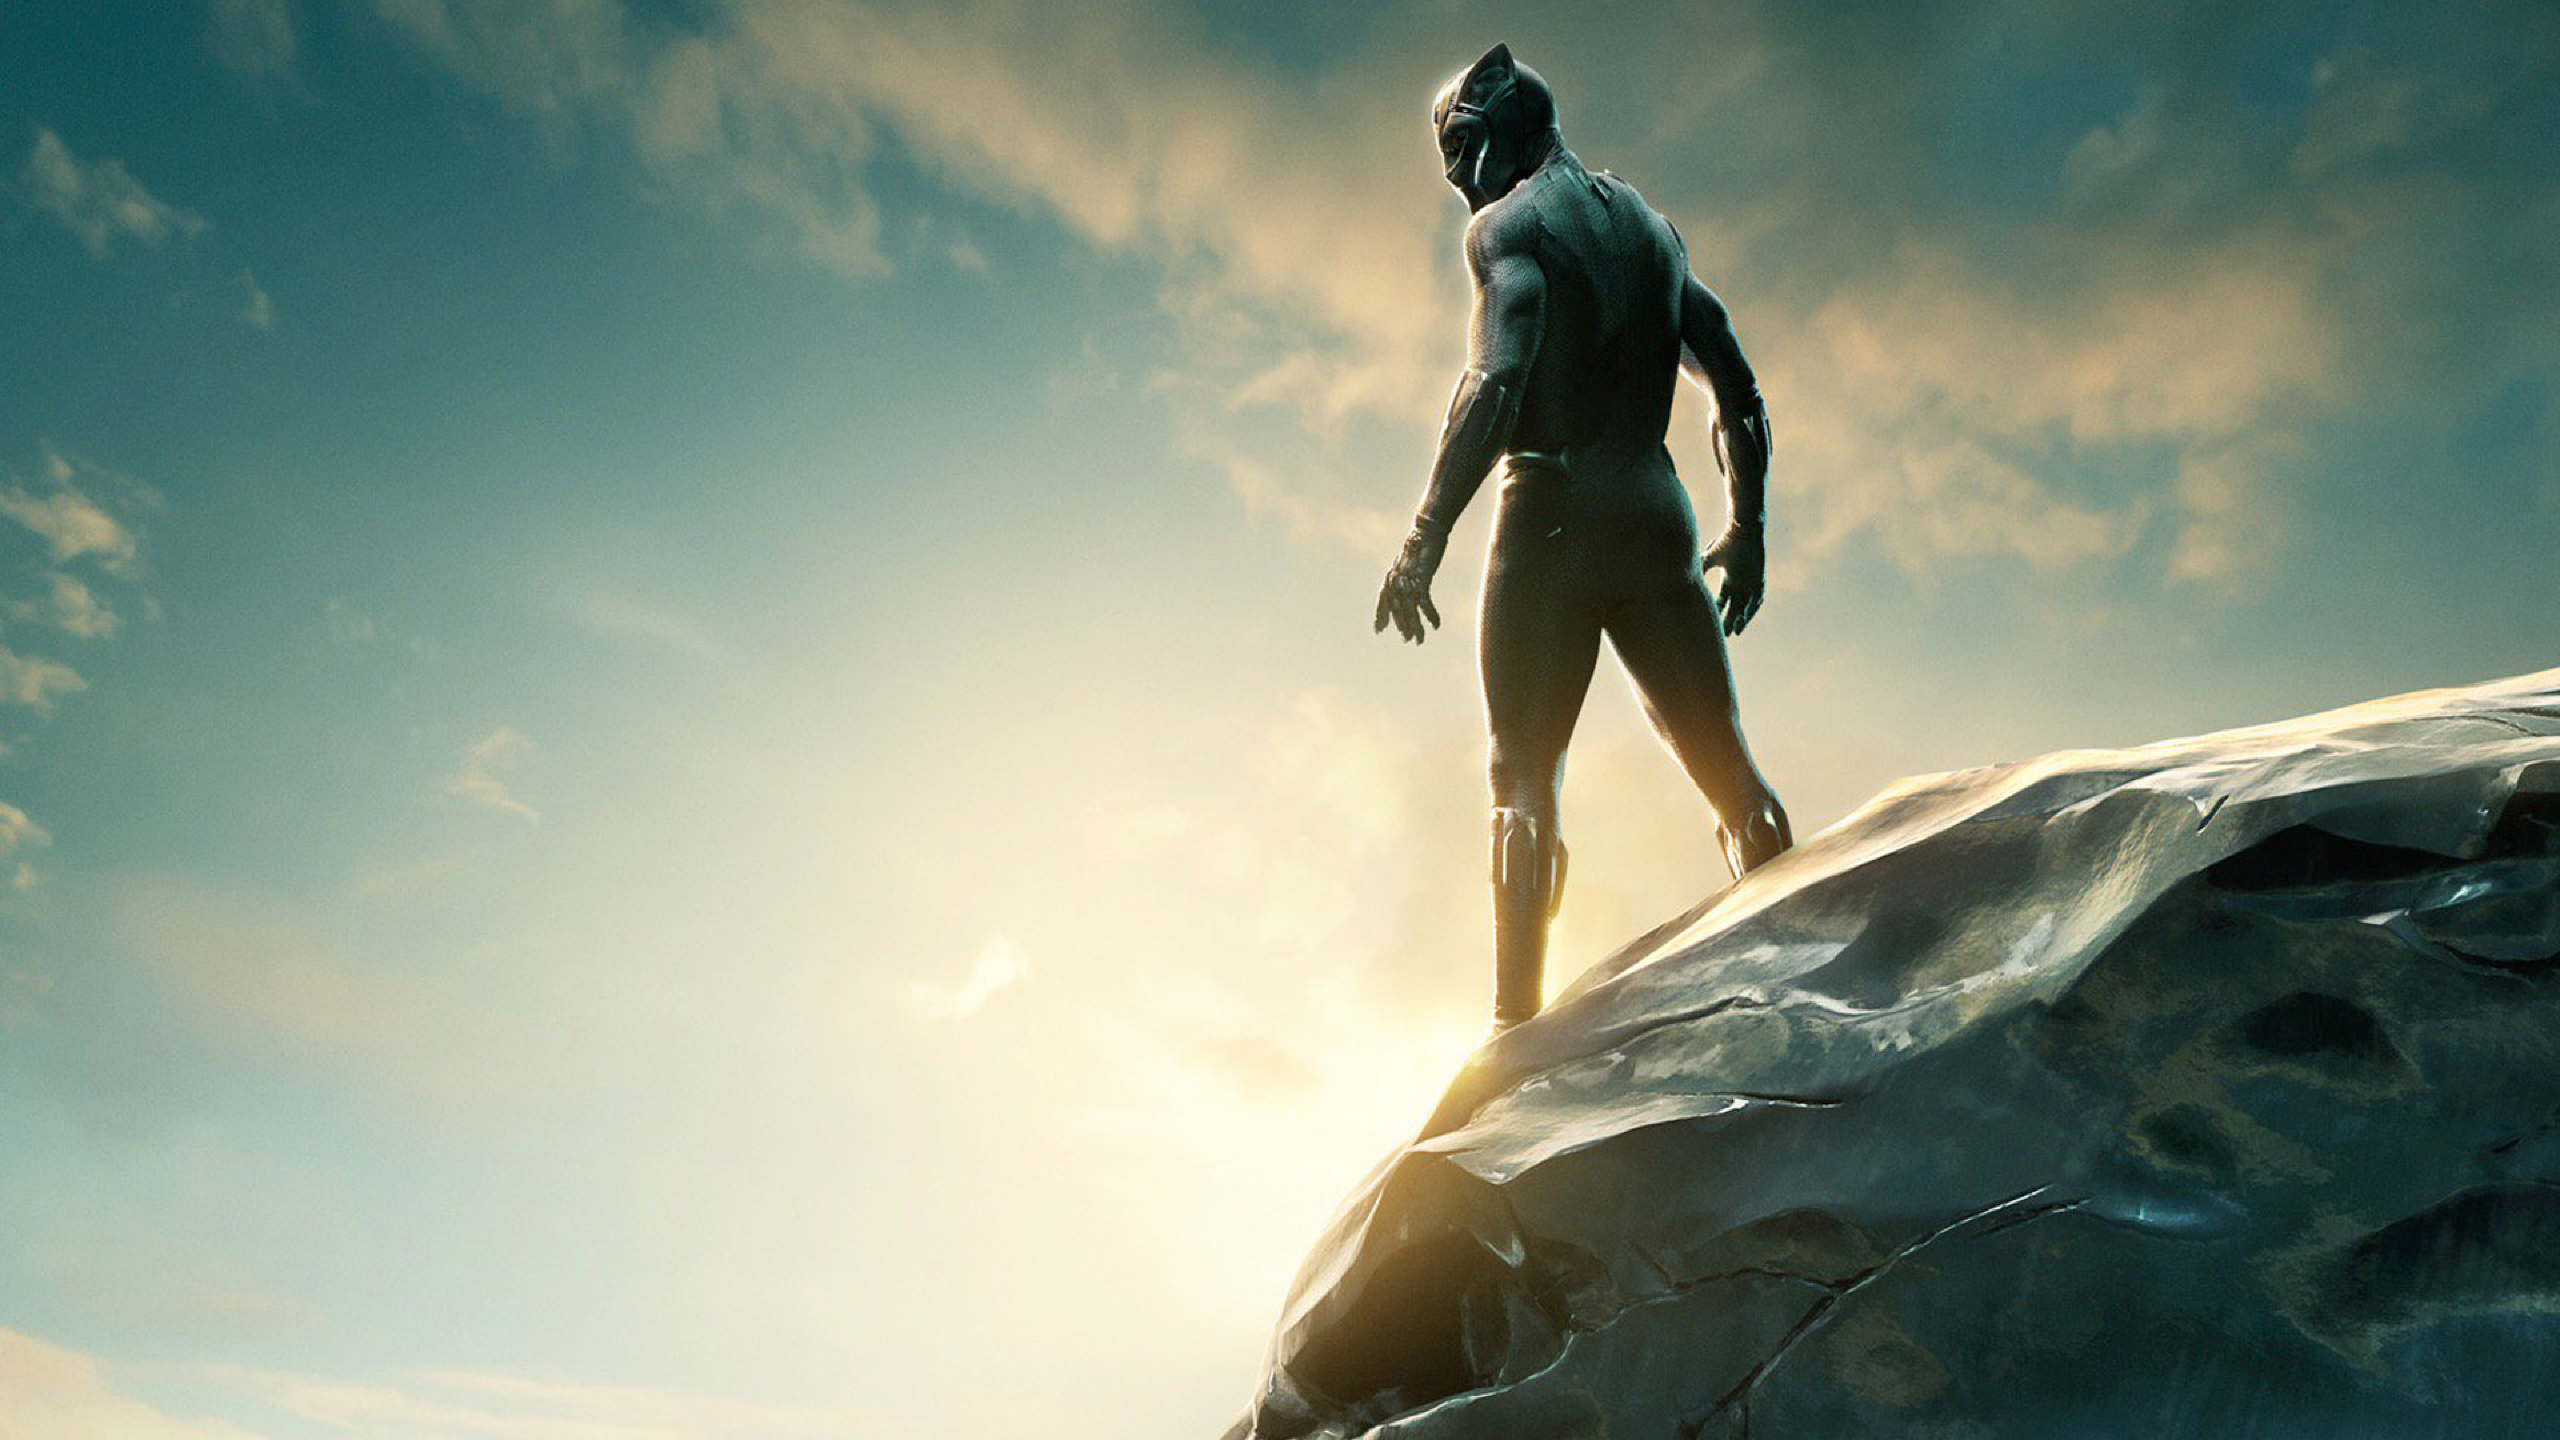 Top 13 Pubg Wallpapers In Full Hd For Pc And Phone: Black Panther 2018 Movie Still, Full HD Wallpaper